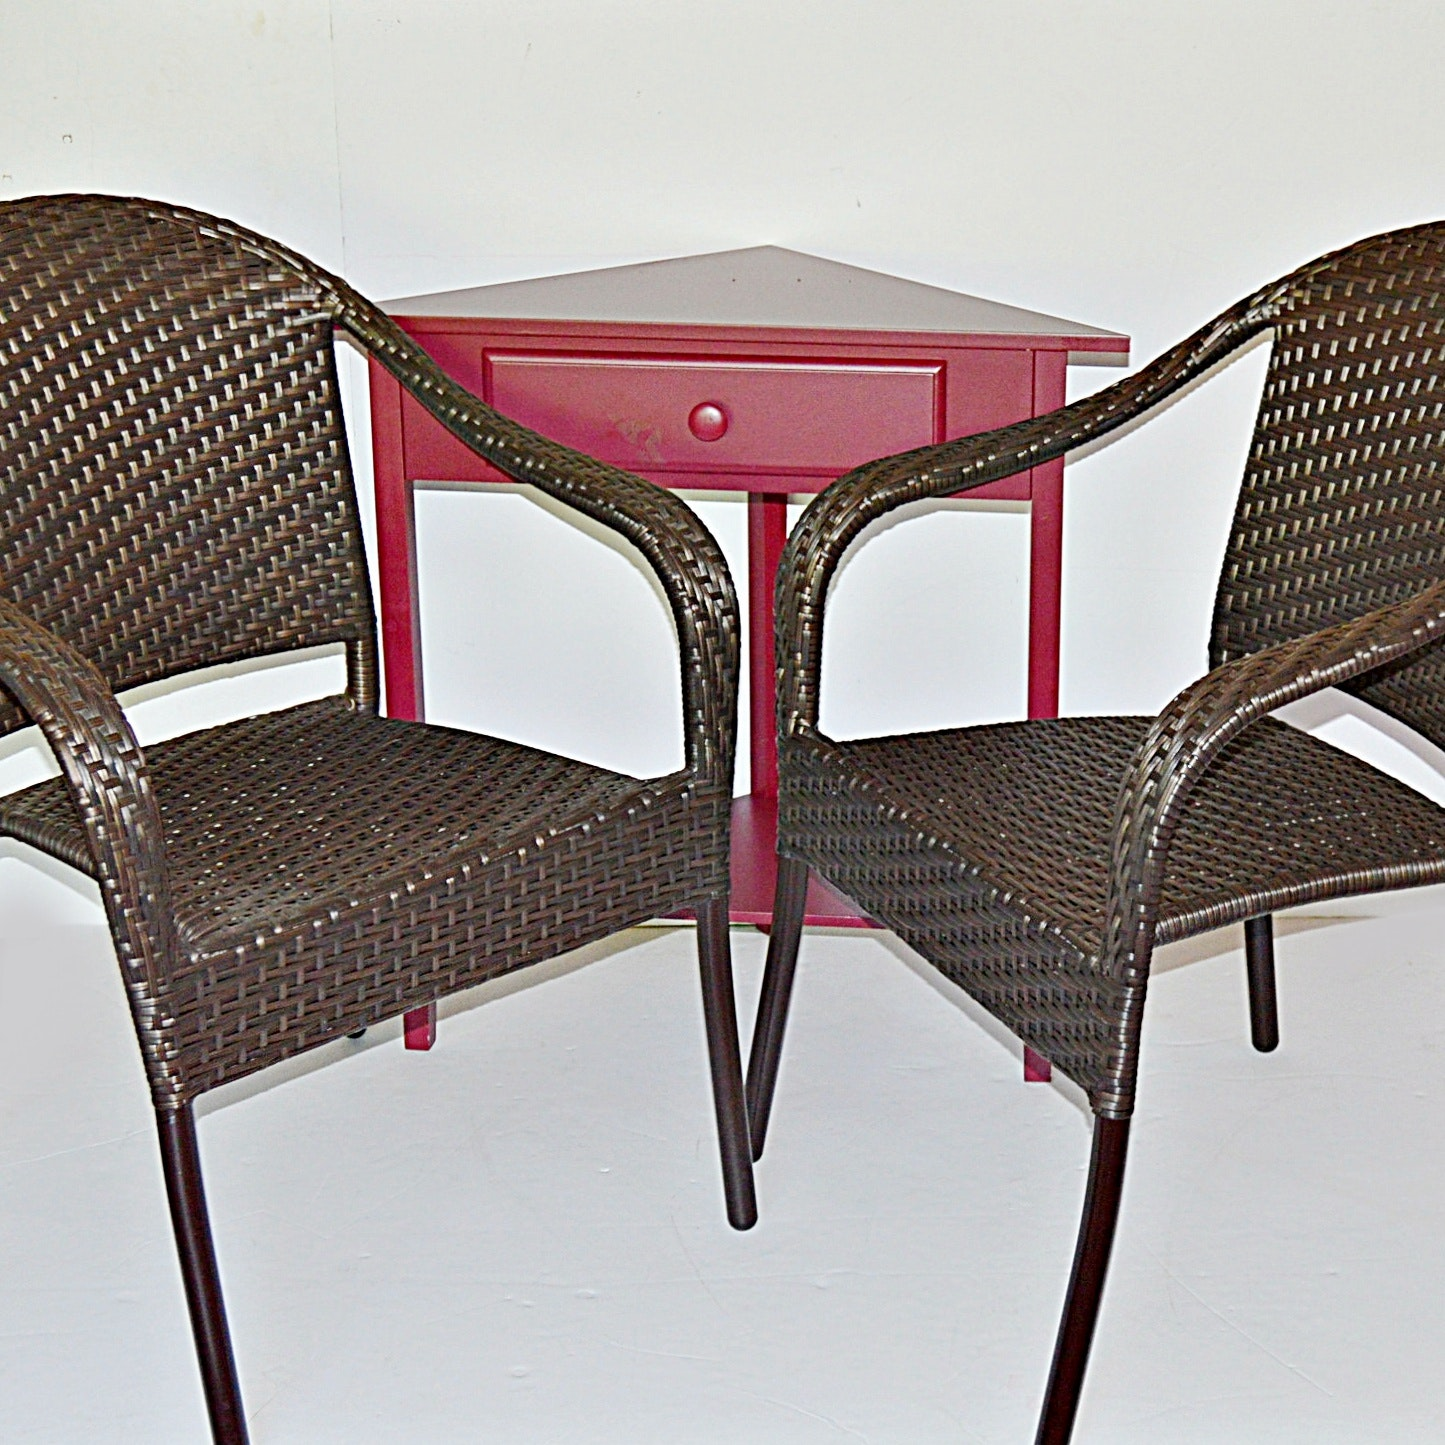 Two Frontgate Woven Vinyl Chair and Red Painted Triangular Corner Table